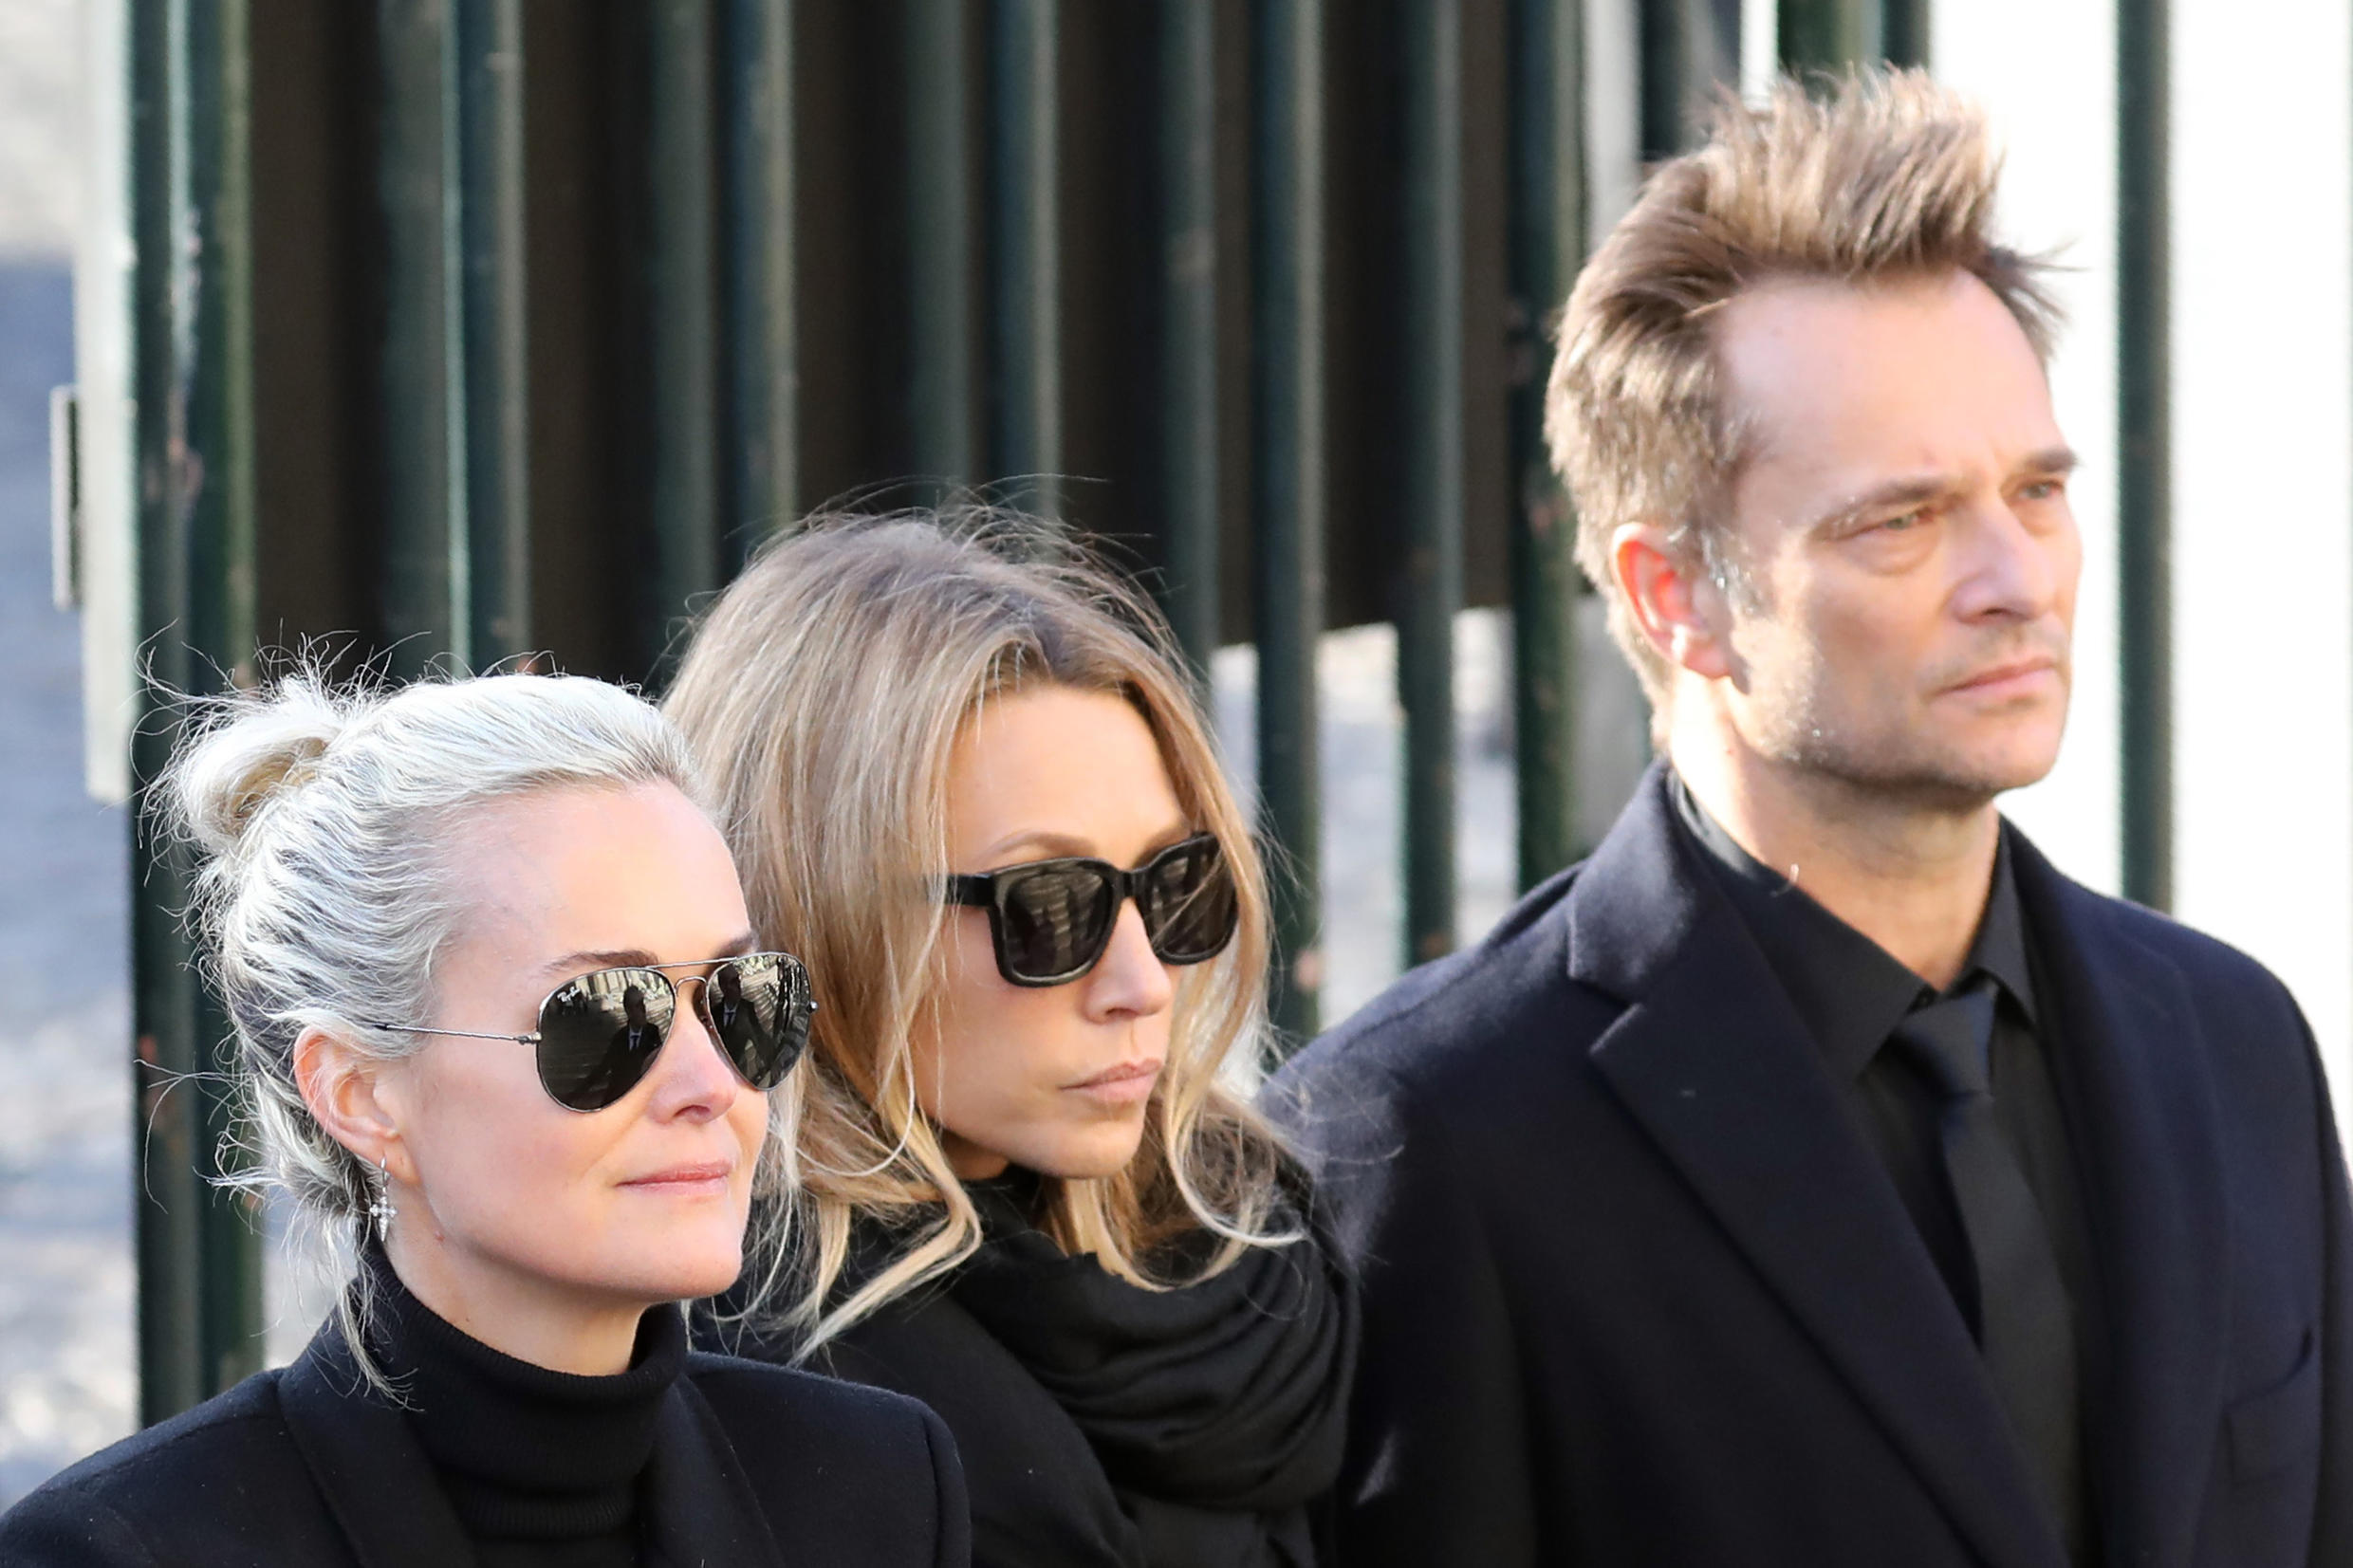 Laeticia Hallyday, (L), wife of late French singer Johnny Hallyday, son of Johnny Hallyday David Hallyday (R) and daughter Laura Smet (C) standing during the funeral ceremony for Johnny Hallyday at the Eglise de la Madeleine